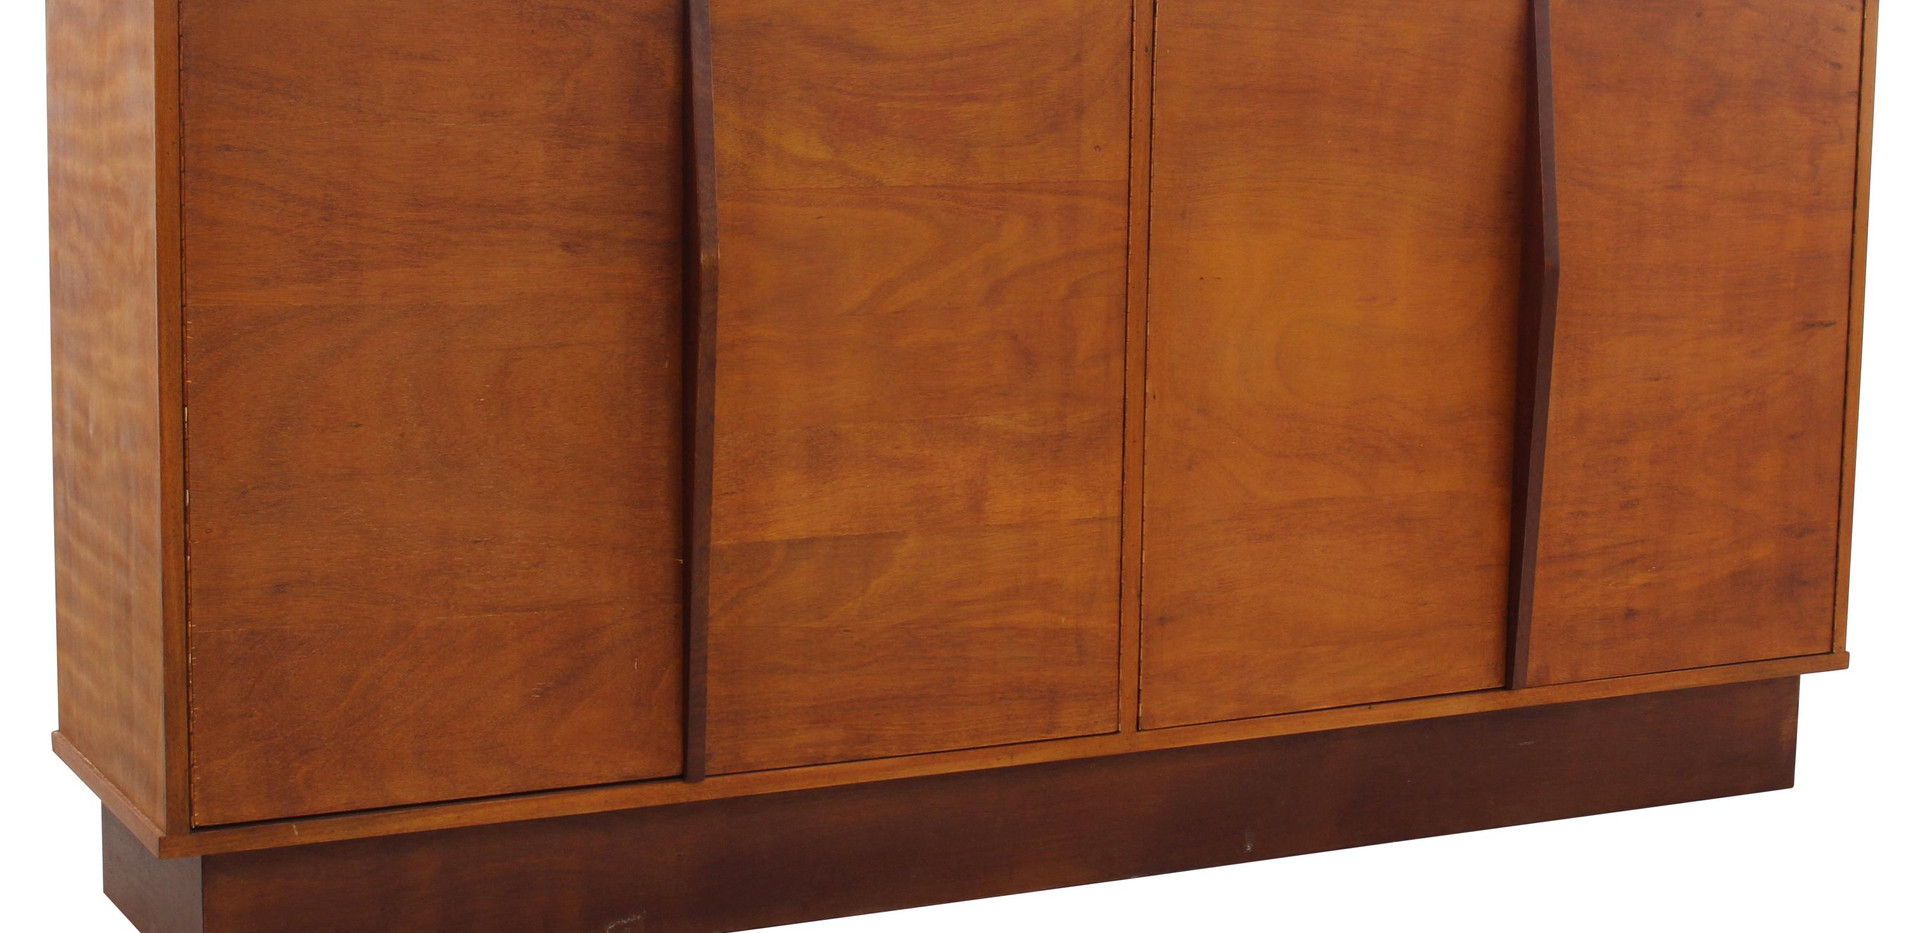 perriand-sideboard-clement-cividino.jpg